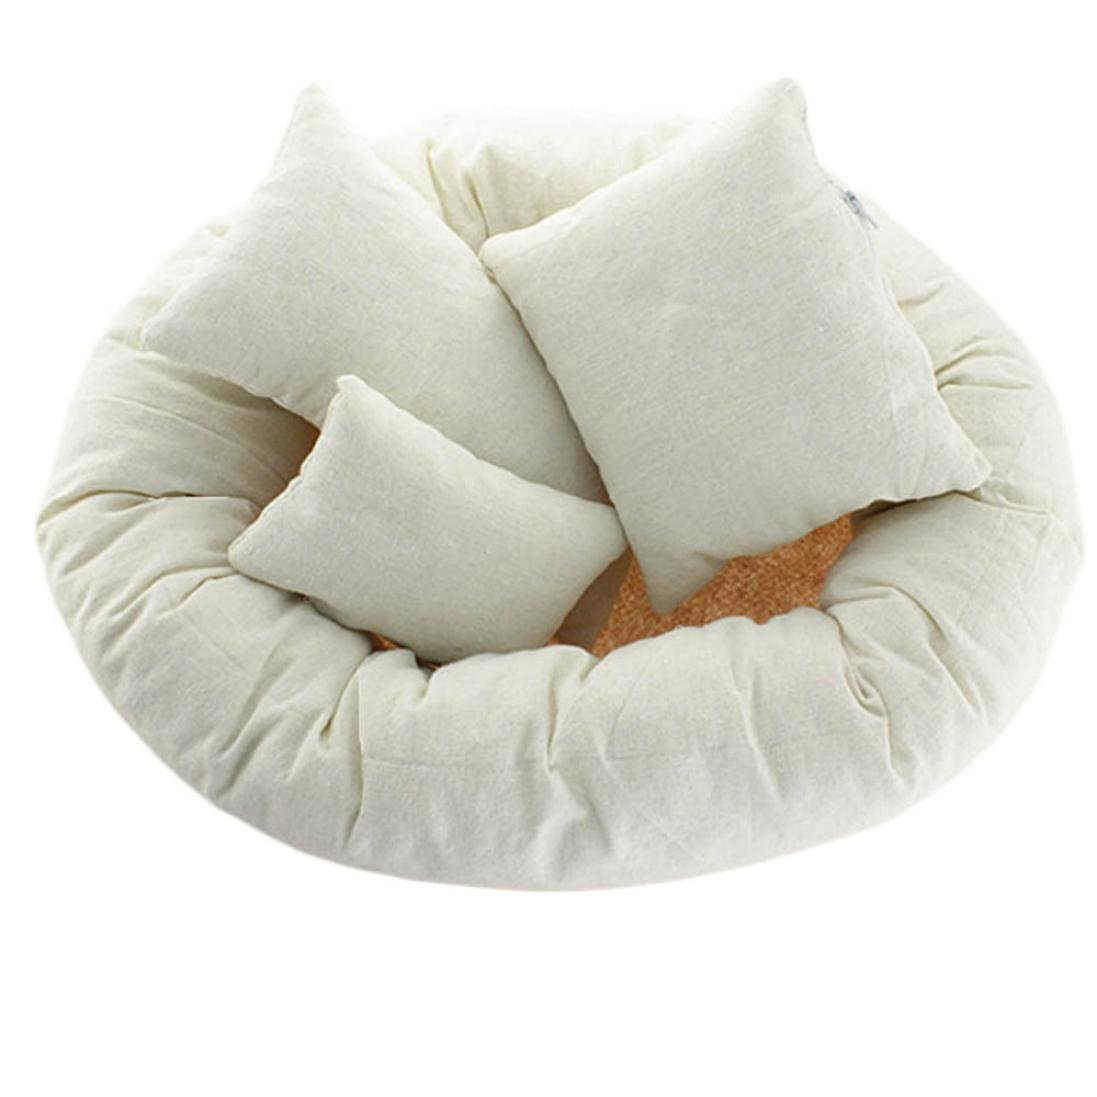 GBSELL 4 PC Newborn Photography Basket Filler Wheat Donut Posing Props Baby Pillow